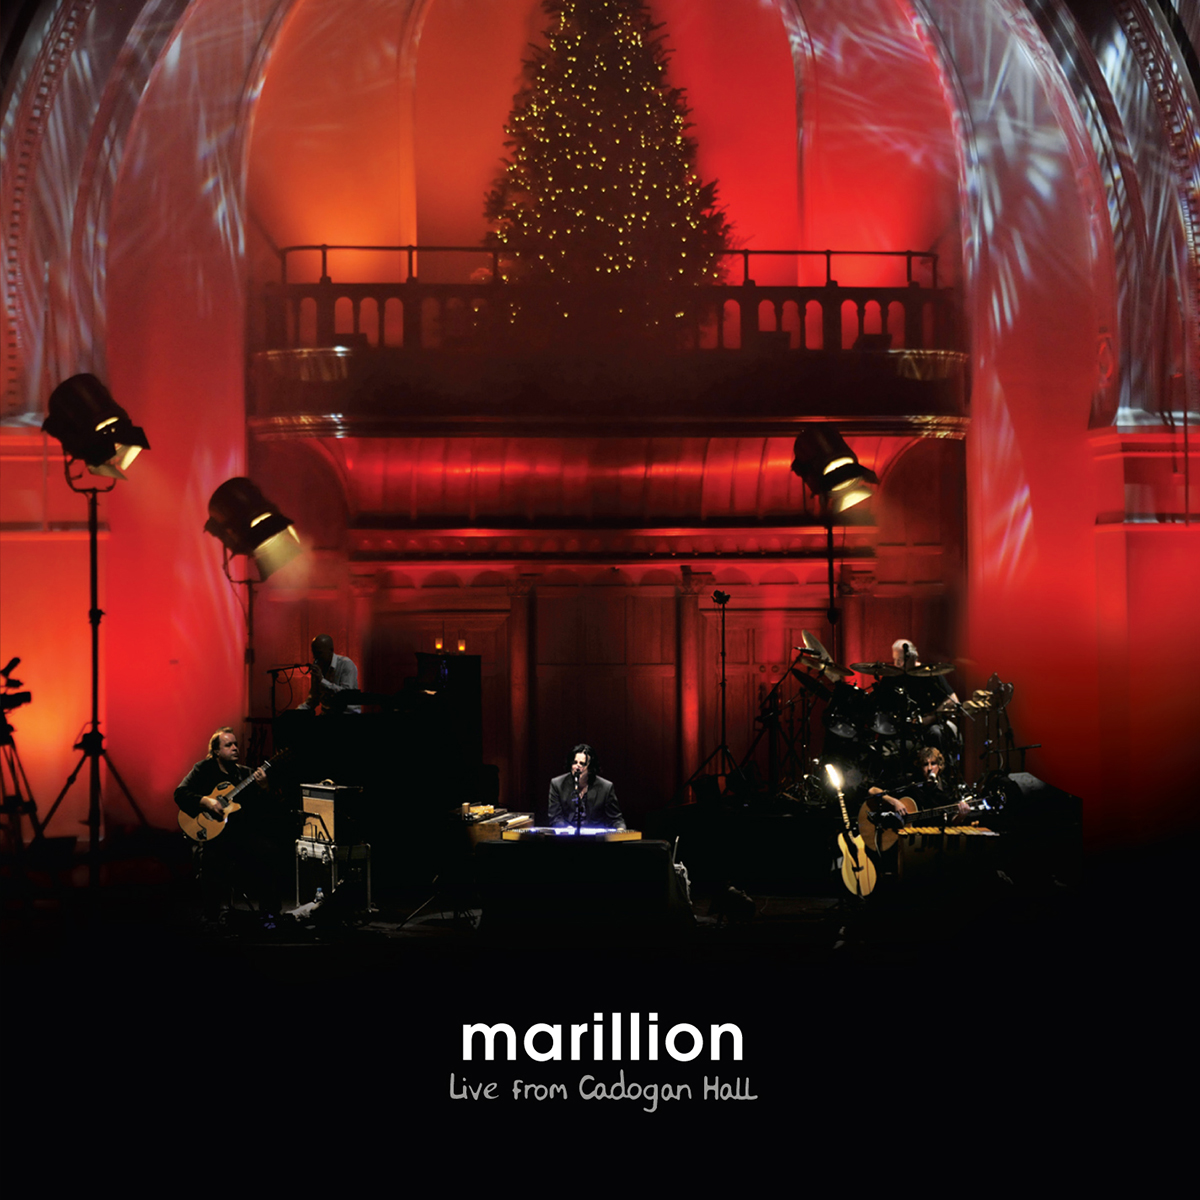 LIVE FROM CADOGAN HALL 2CD LIVE ALBUM